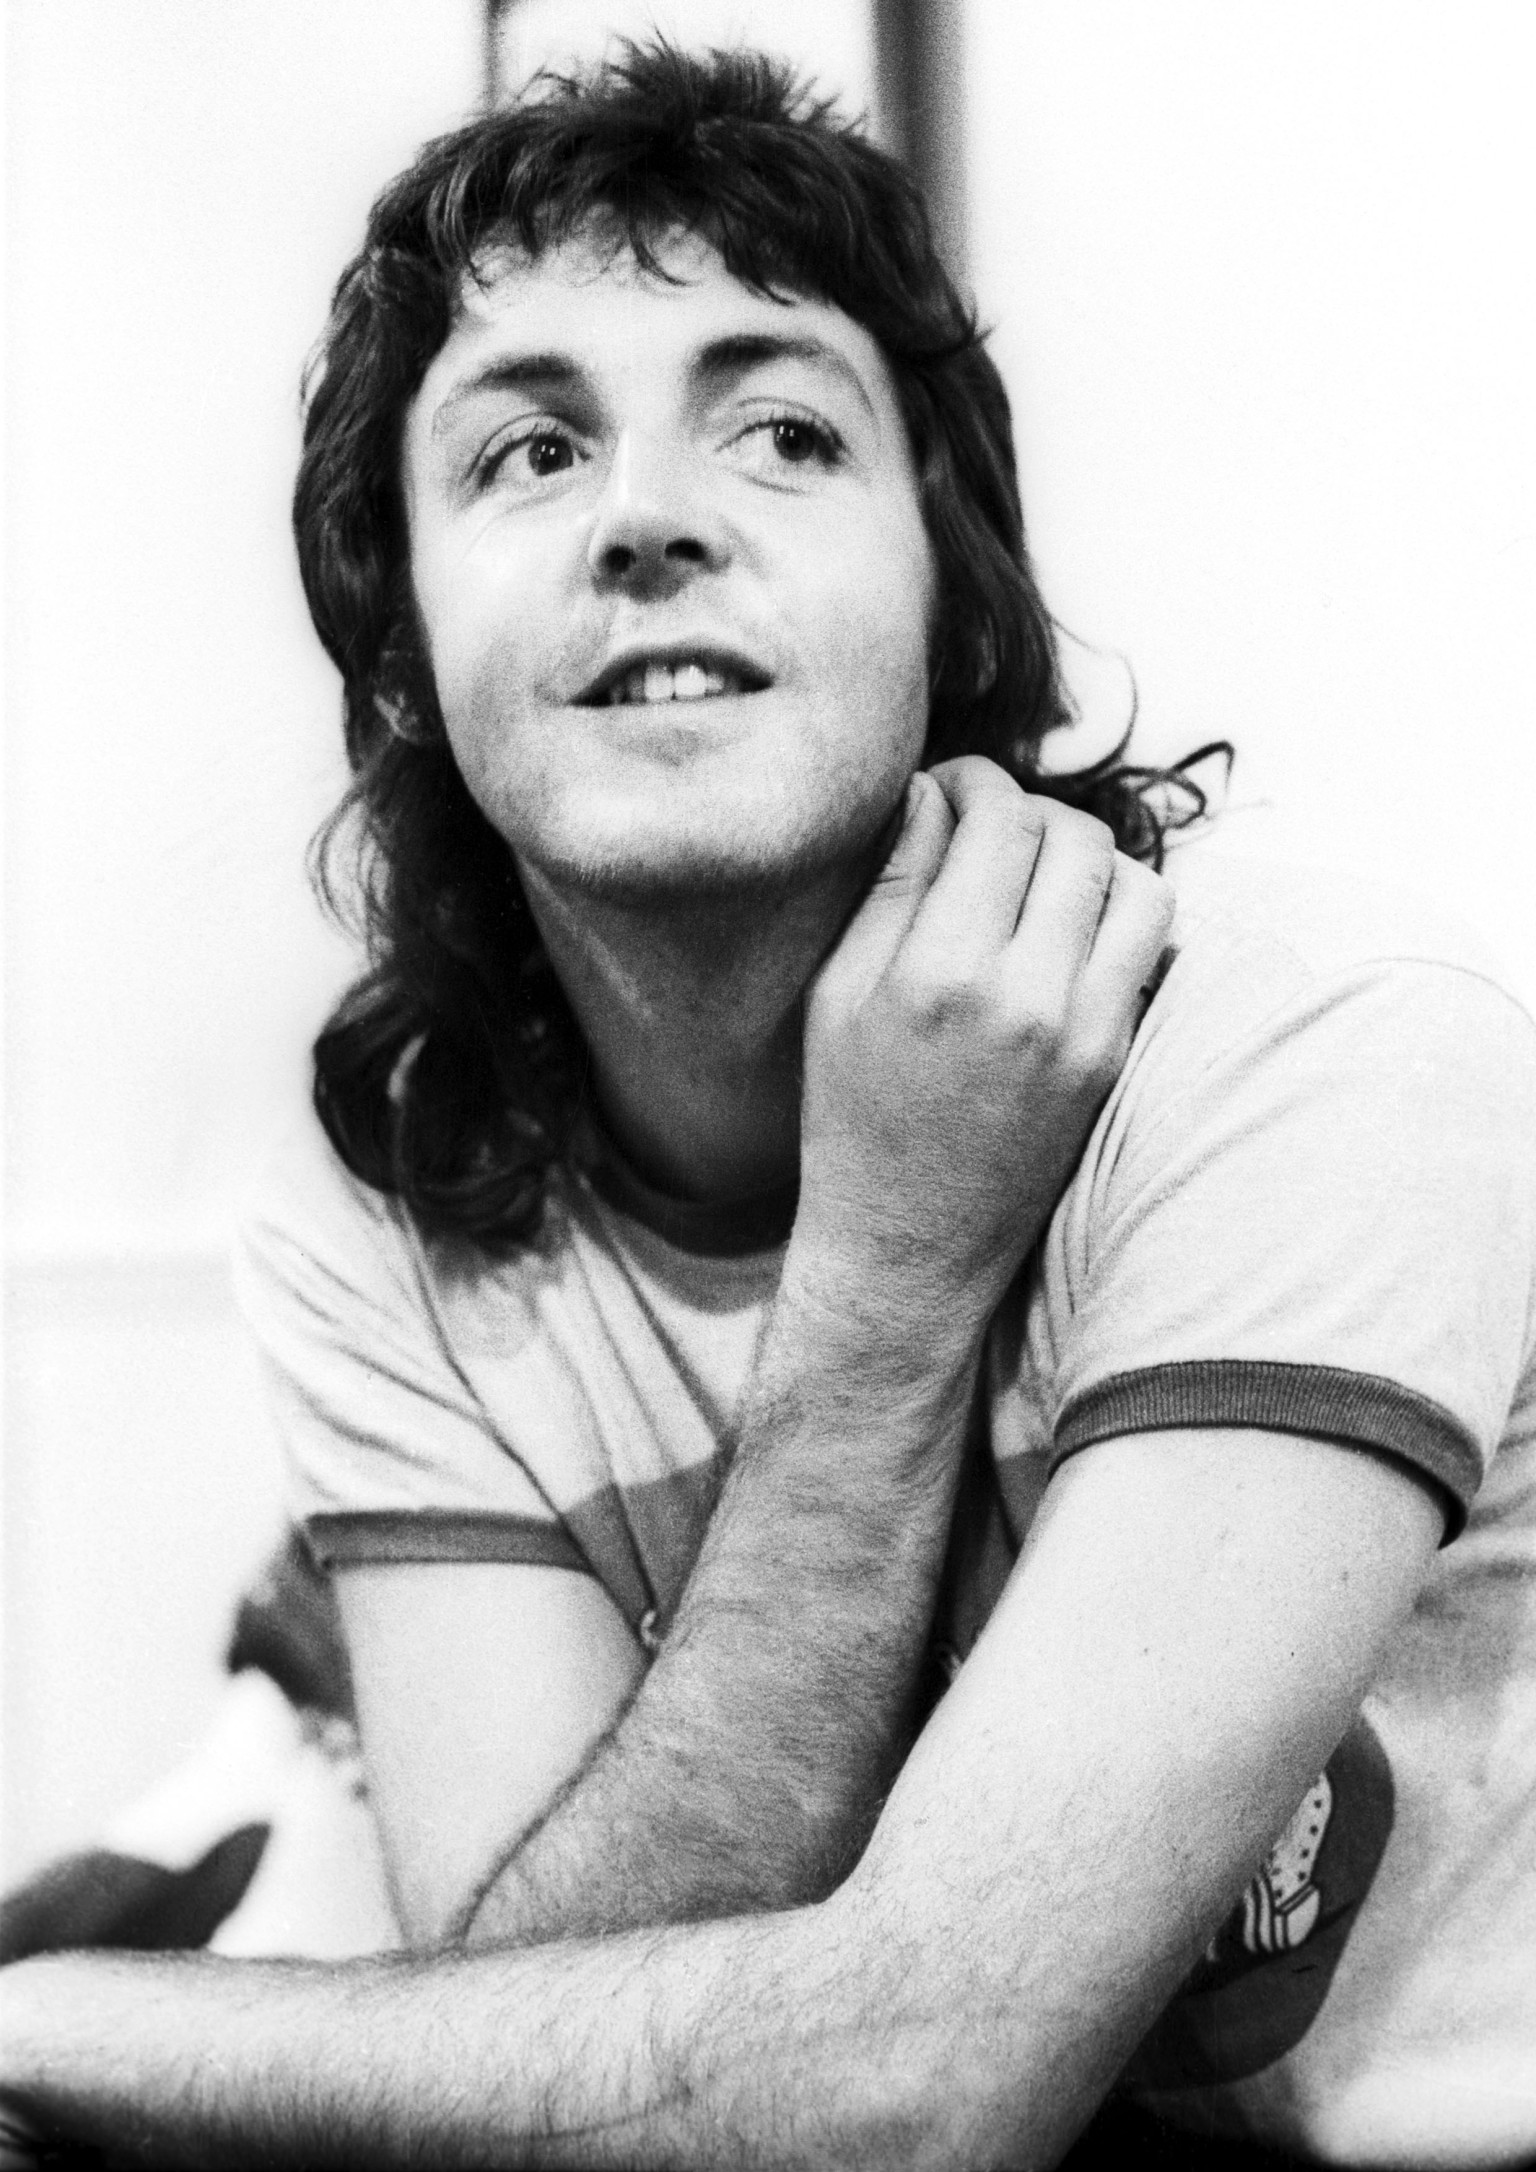 McCartney Still Gives Me Wings